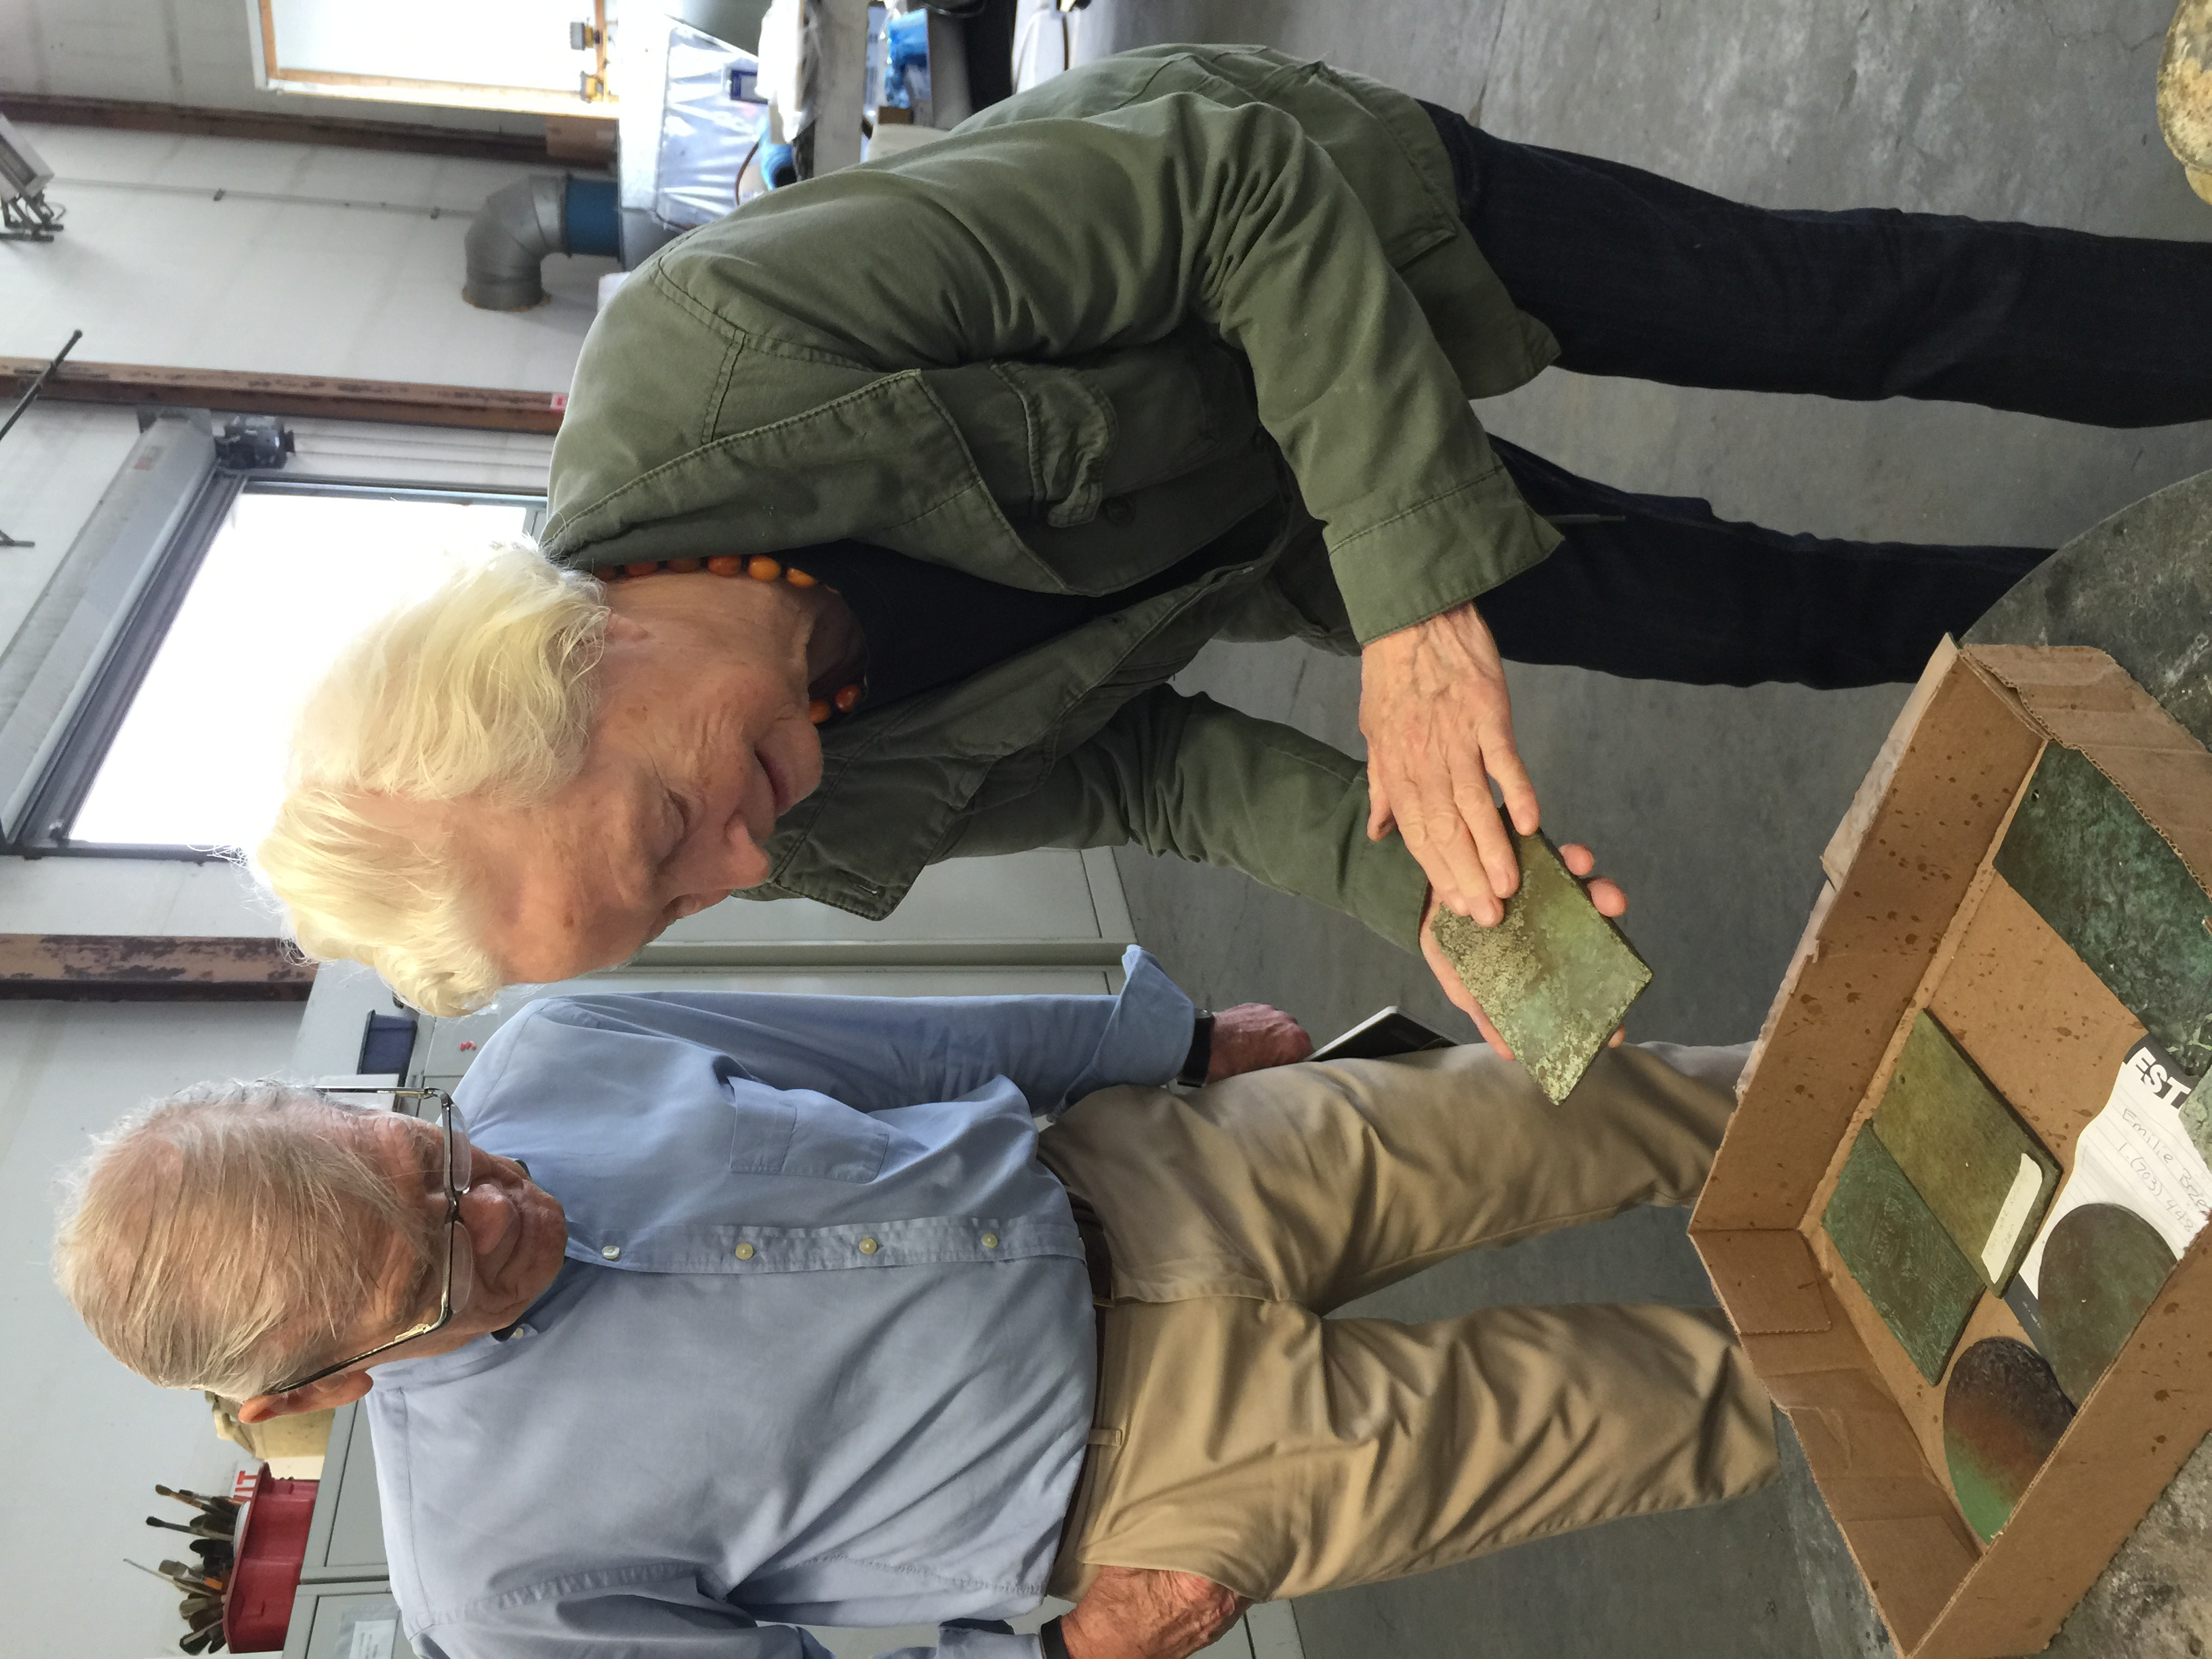 3. Here I stand with Mr. Polich, sampling and selecting different types of patina, an important step in the process of casting a work.